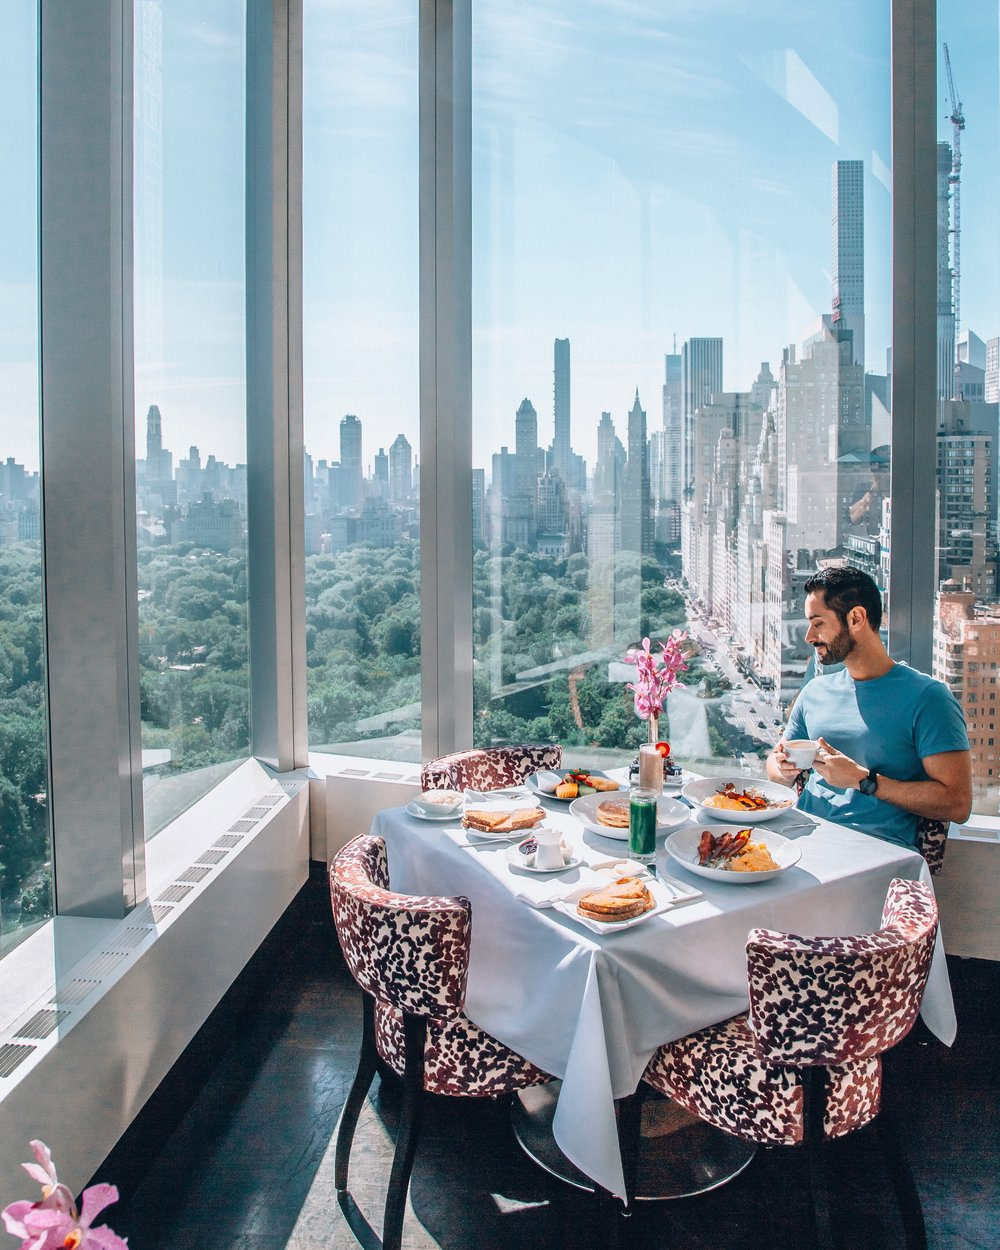 The views of Central Park are simply breathtaking. This is the main restaurant Asiate where breakfast is also served.